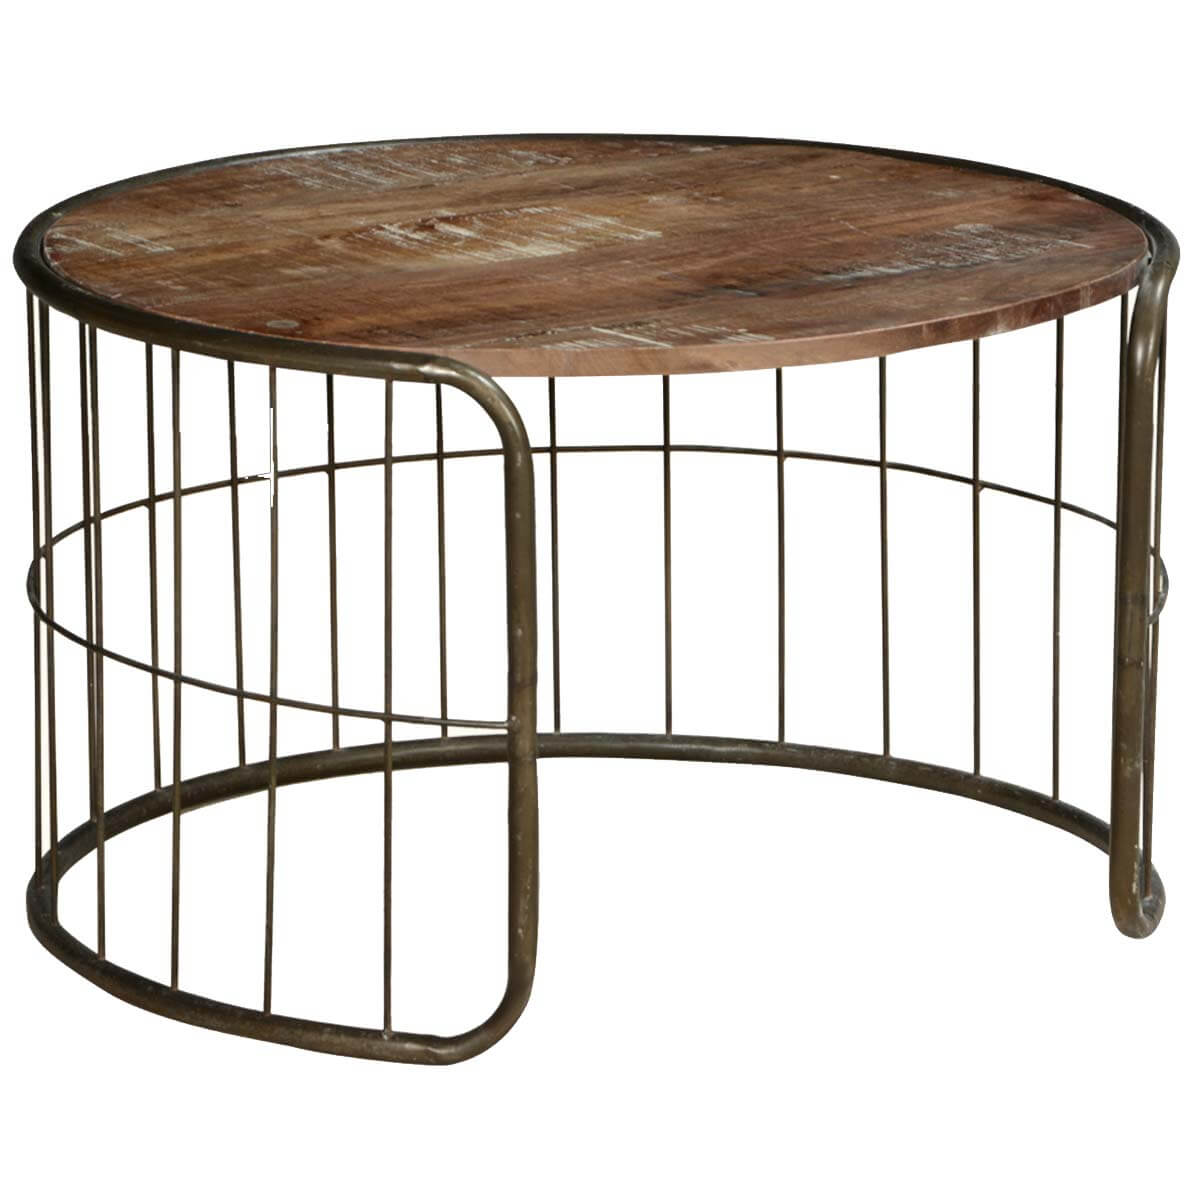 On the fence mango wood iron rustic 30 round coffee table Rustic wood and metal coffee table